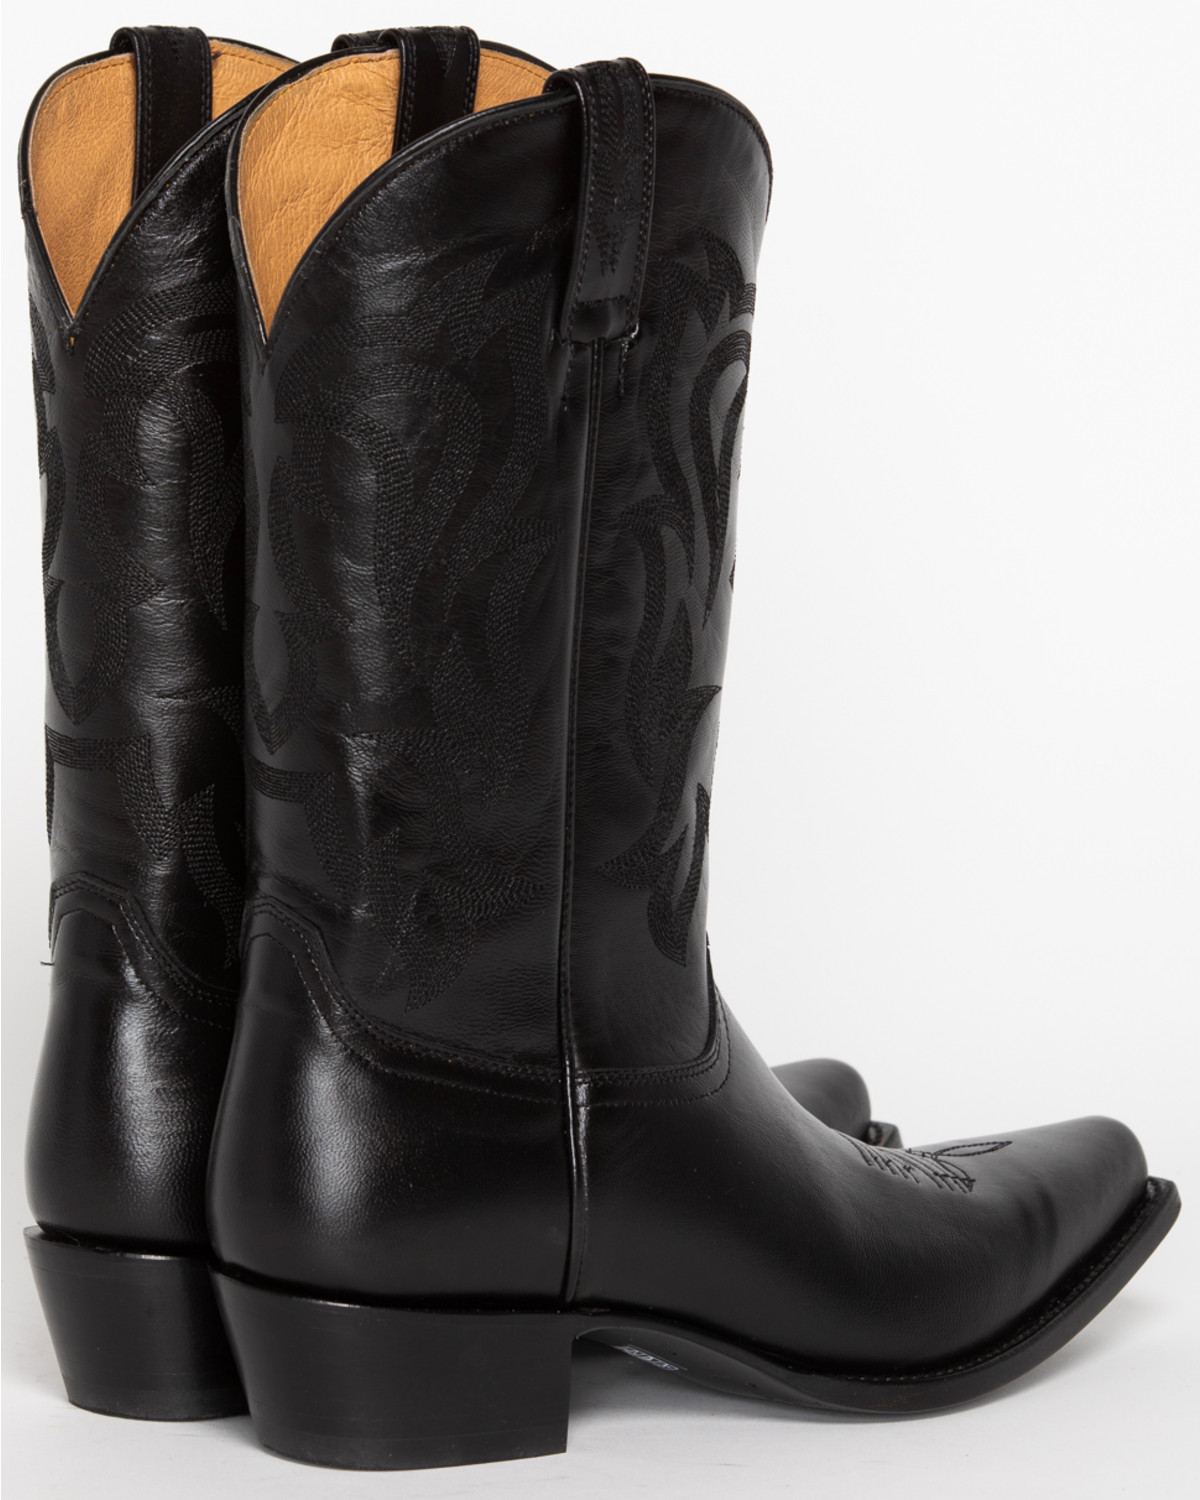 Shyanne Women S Black Cowgirl Boots Snip Toe Country